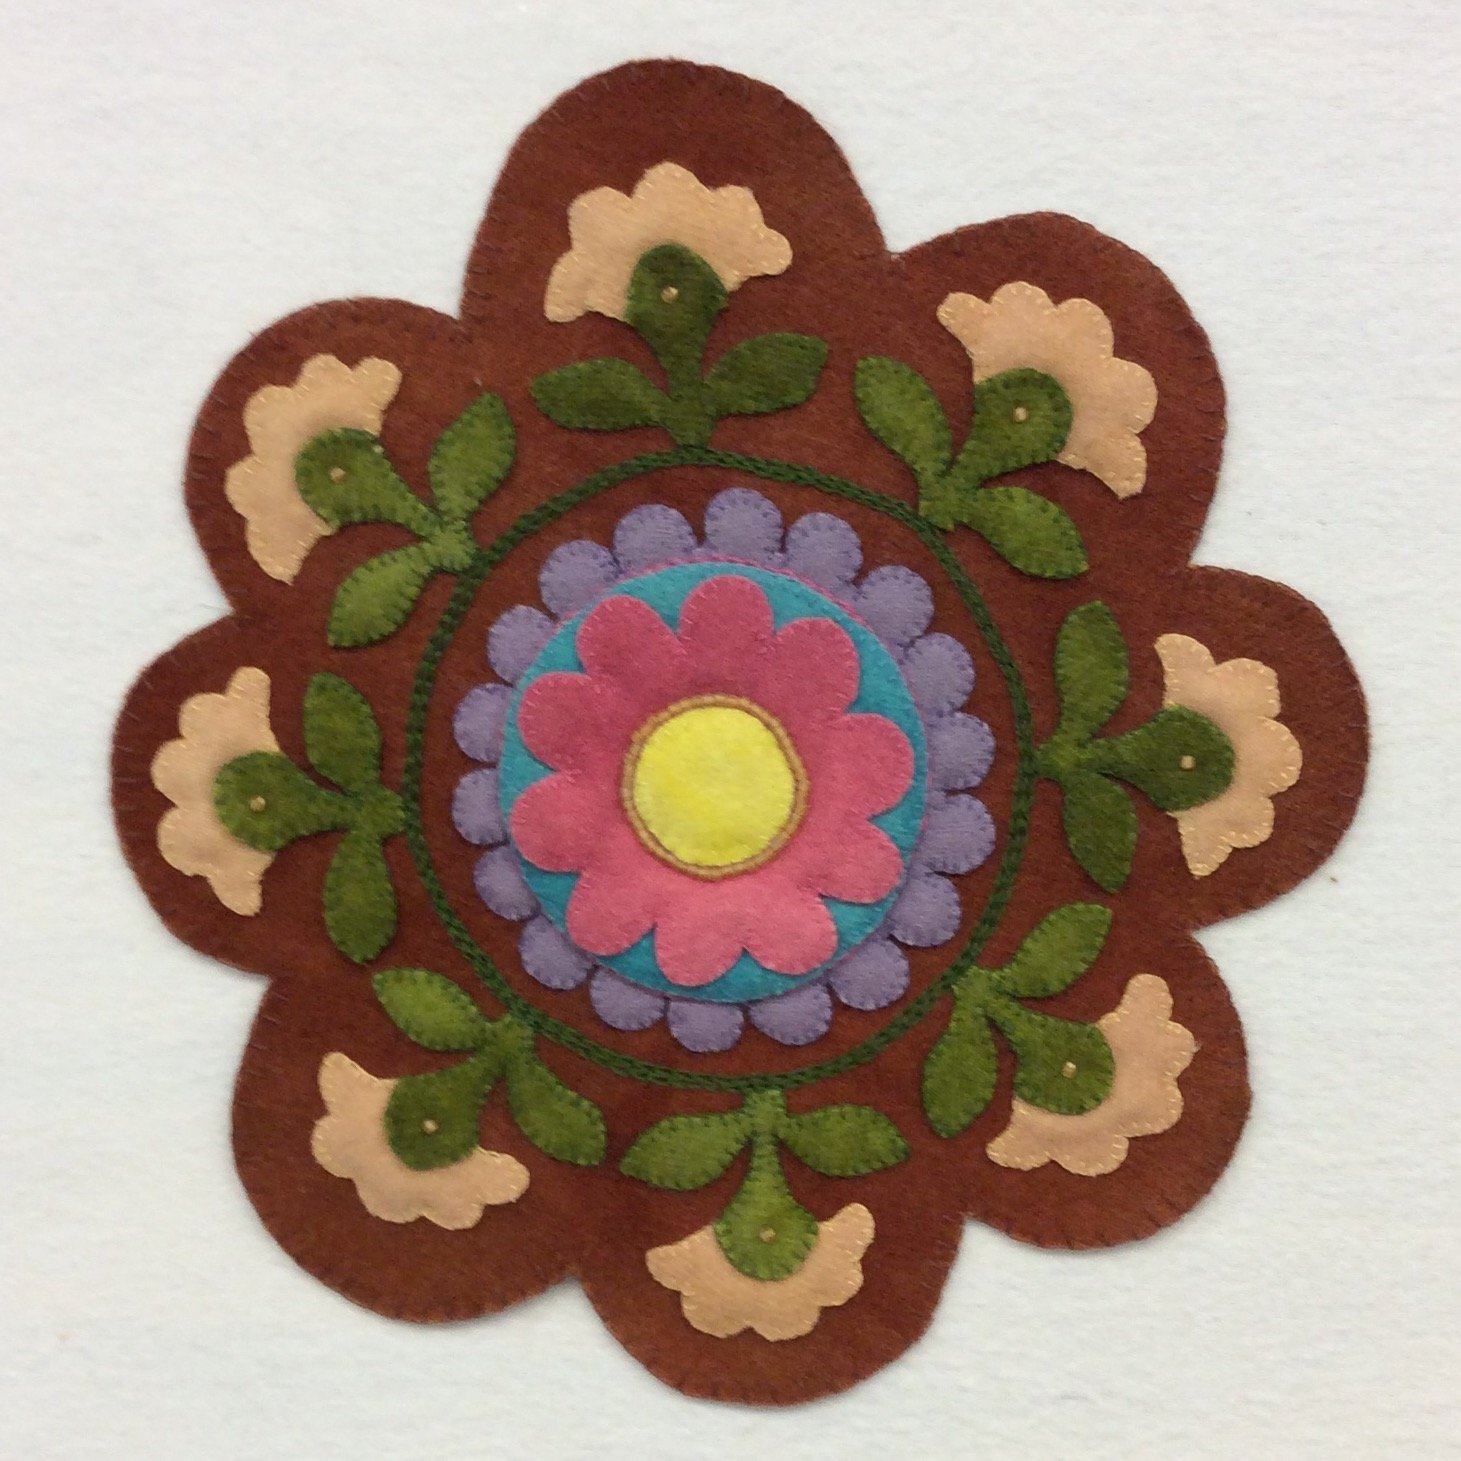 Painted Pottery Table Mat Wool Kit - PGK